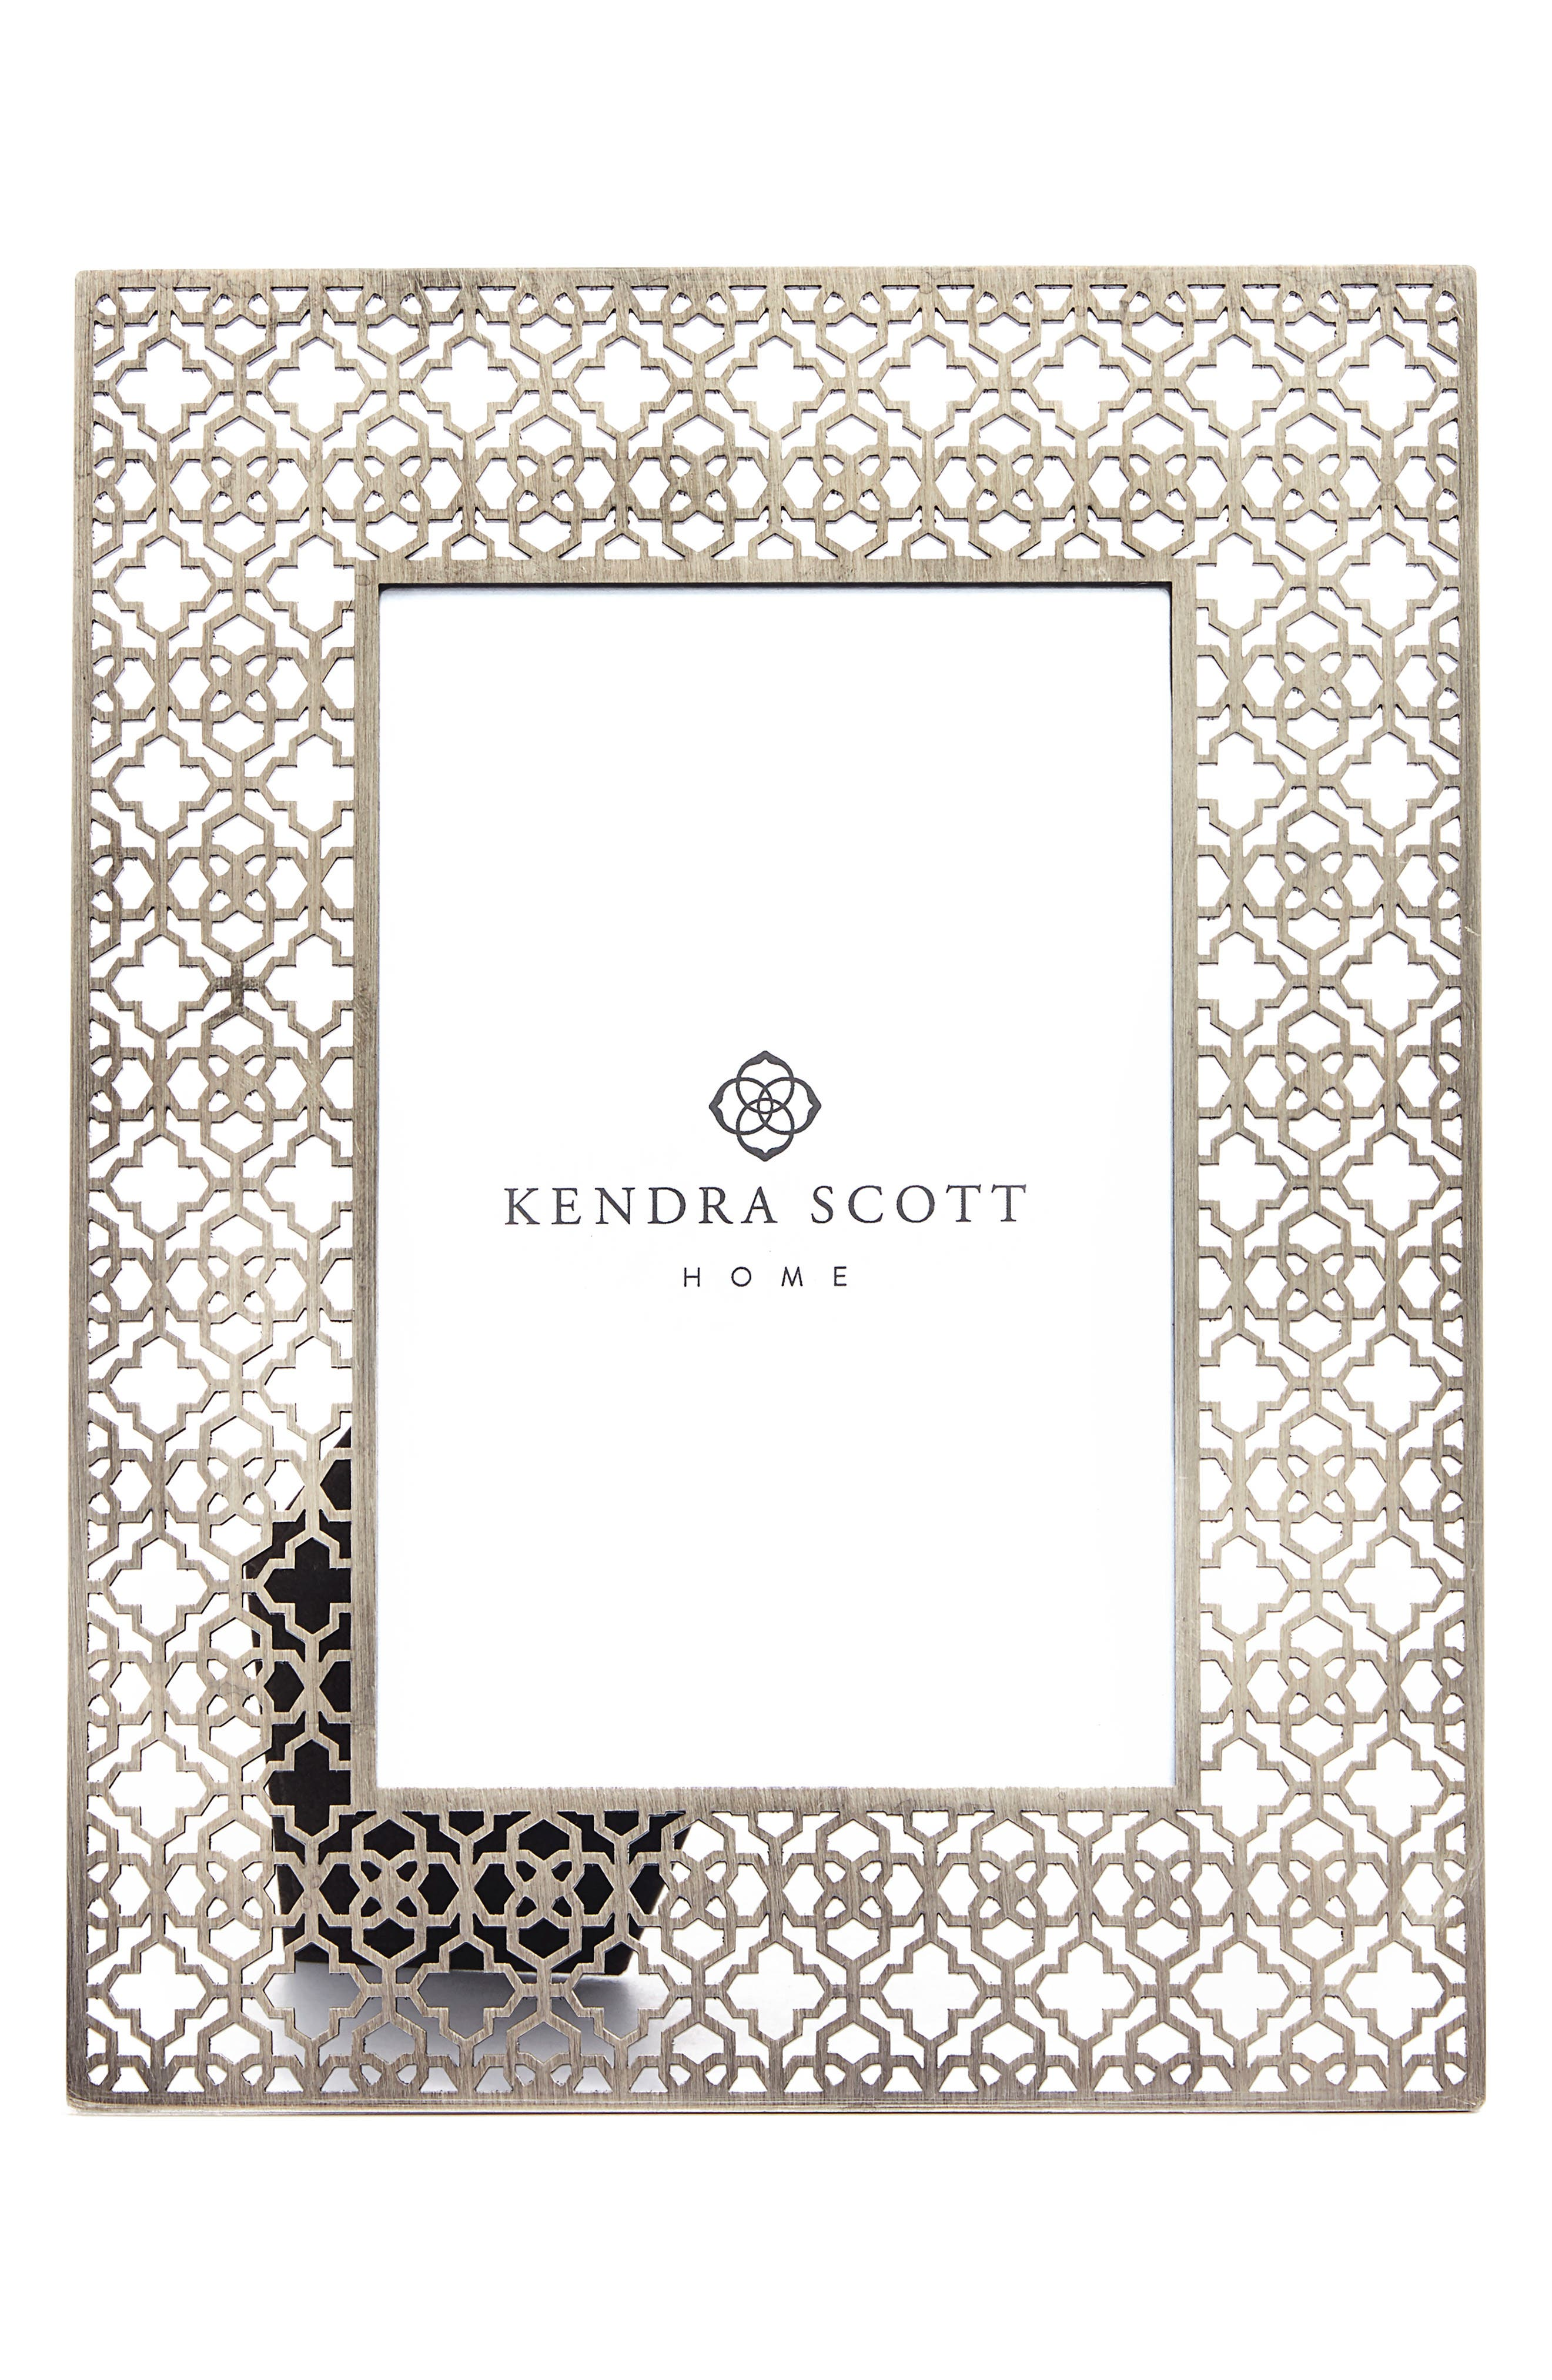 Kendra Scott Filigree Picture Frame